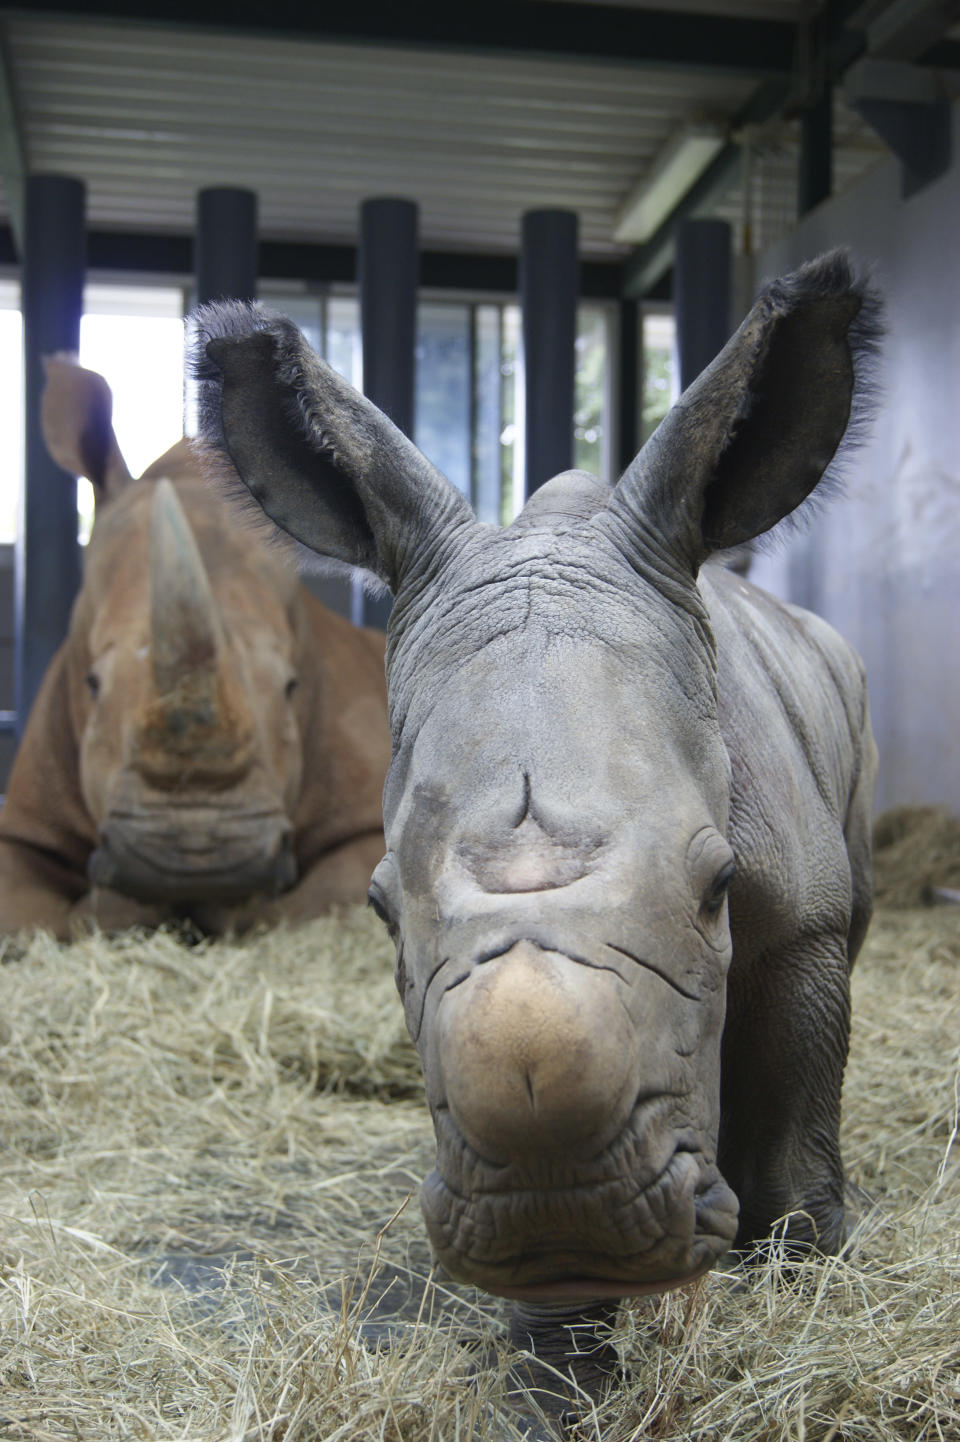 In this image provided by Walt Disney World, white rhinoceros Kendi, back left, shows off a baby male rhino she gave birth to Sunday, Oct. 25, 2020, at Disney's Animal Kingdom at Walt Disney World Resort in Lake Buena Vista, Fla. The baby rhino was the result of a Species Survival Plan overseen by the Association of Zoos and Aquariums to ensure the responsible breeding of endangered species. (Walt Disney World via AP)